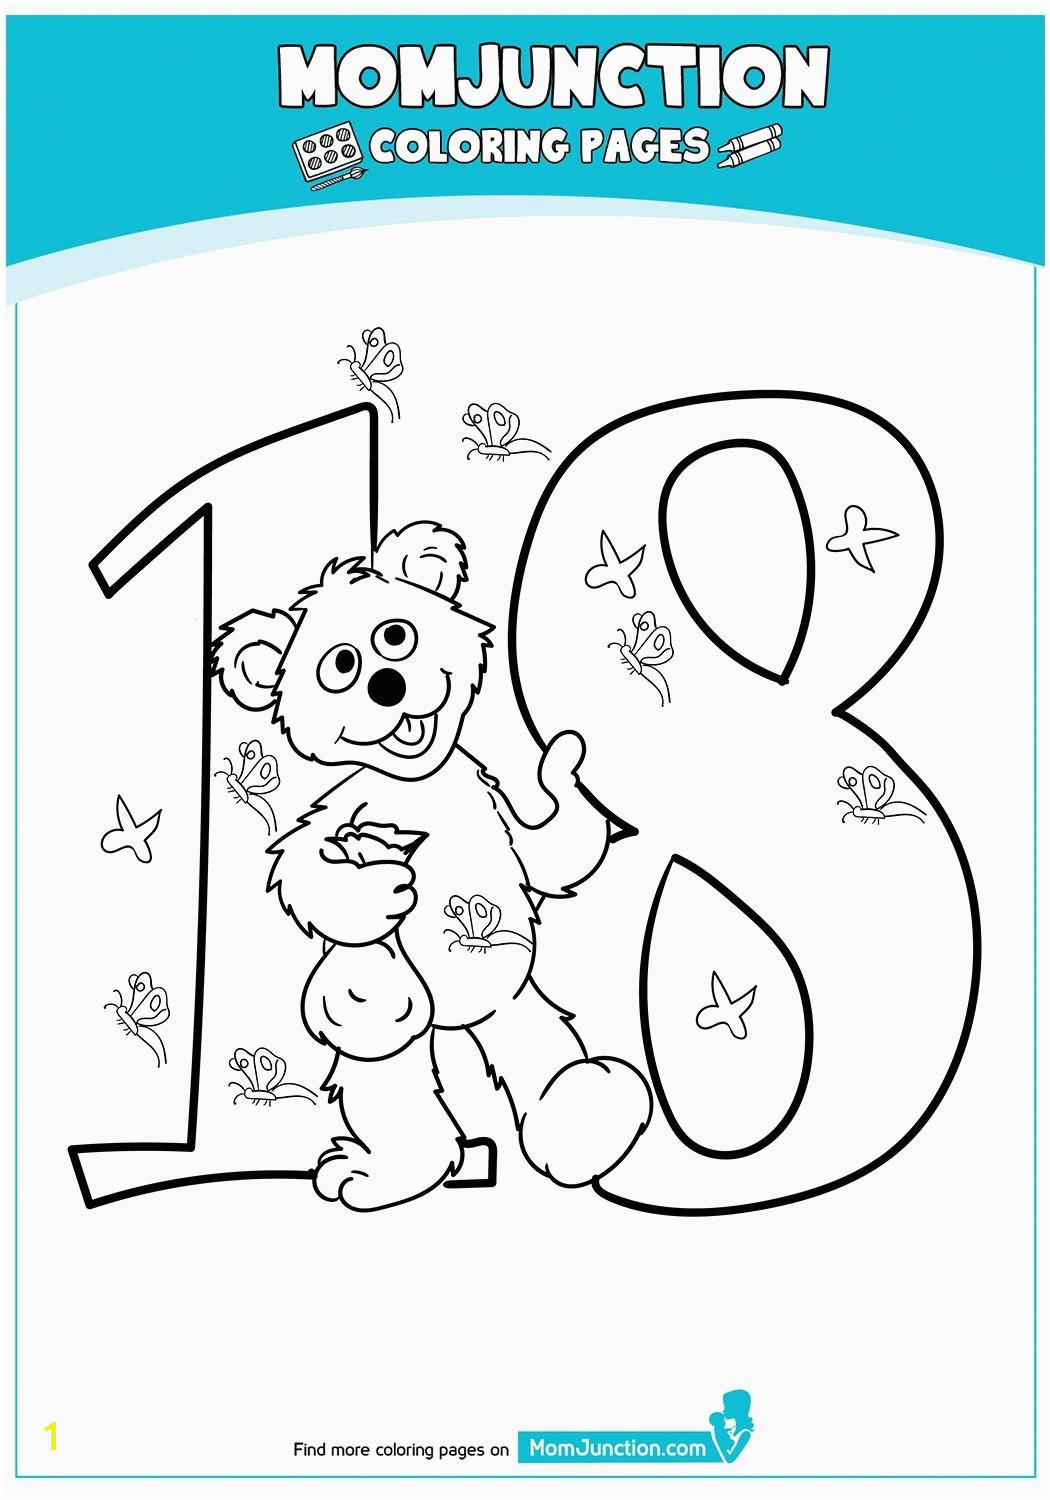 Flag Coloring Pages Coloring Page Numbers Beautiful sol R Coloring Pages Best 0d